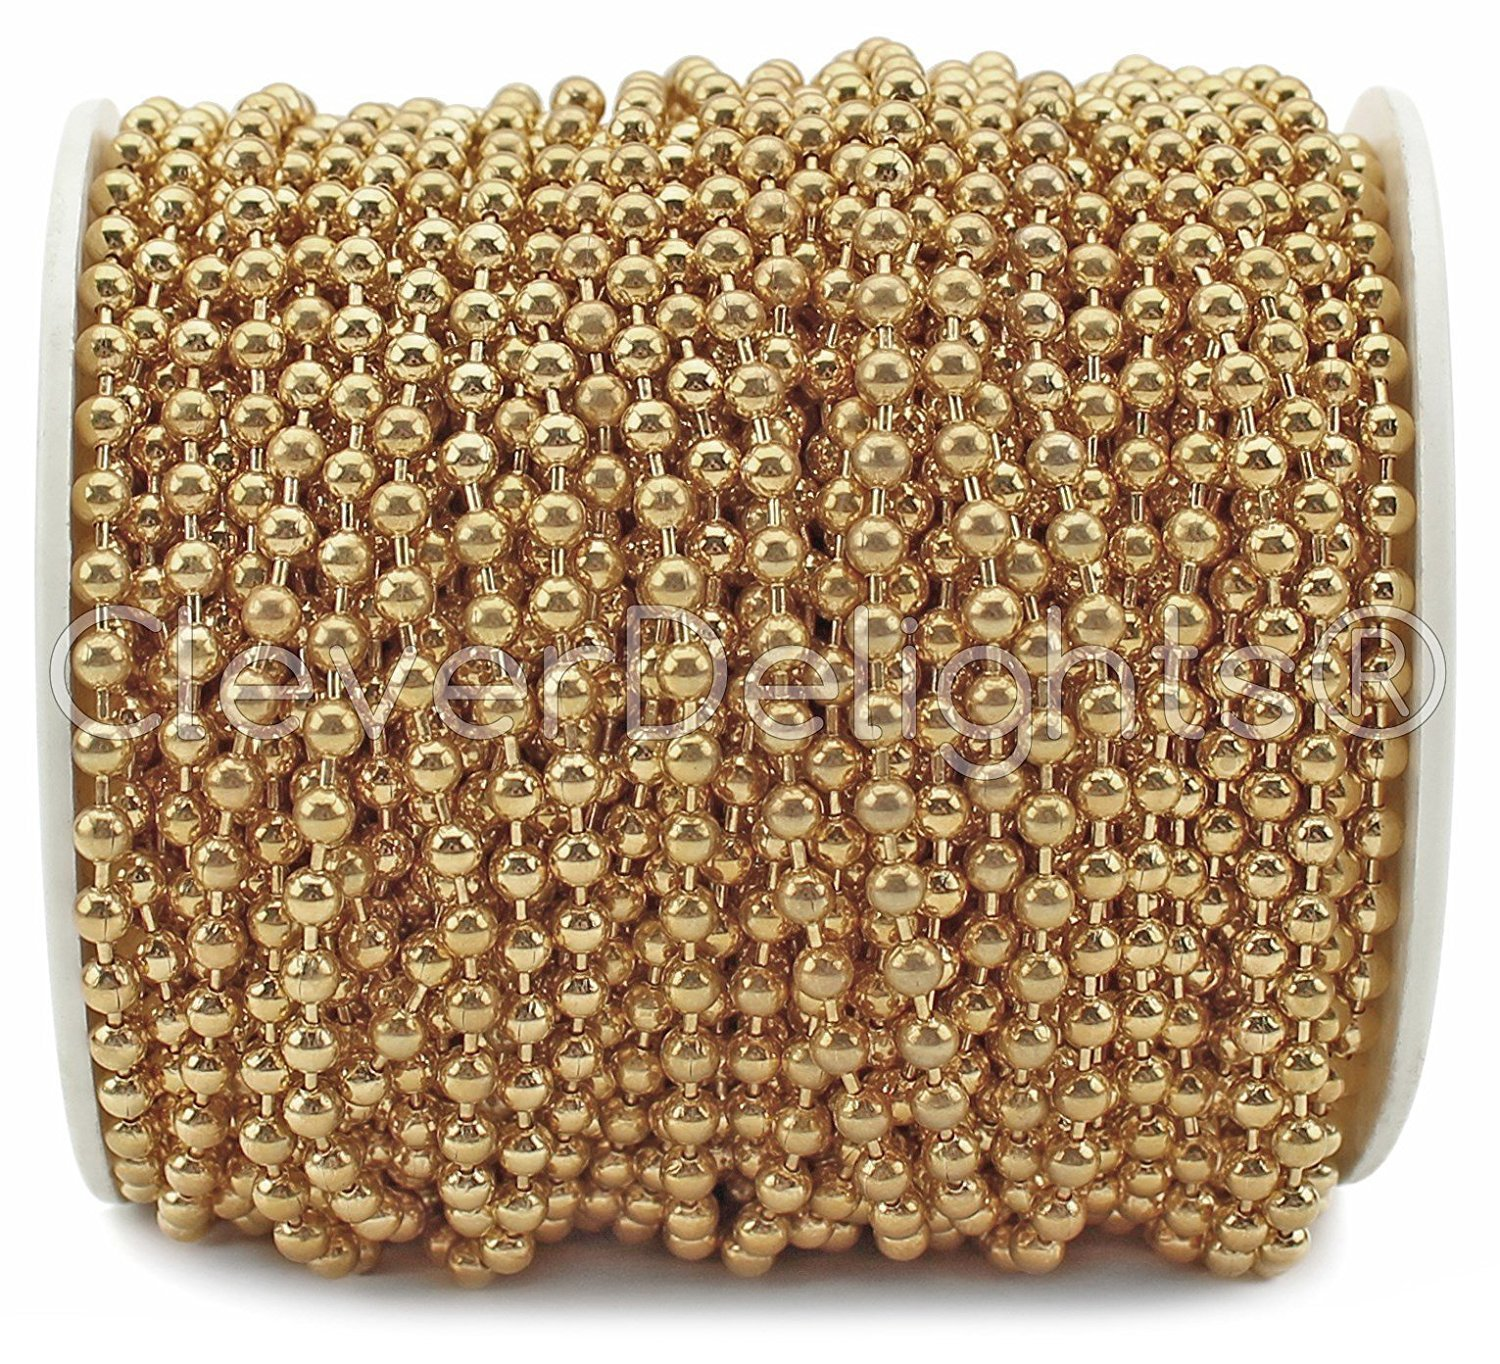 CleverDelights Ball Chain Spool - 30 Feet - 3.2mm Ball - Champagne Gold Color